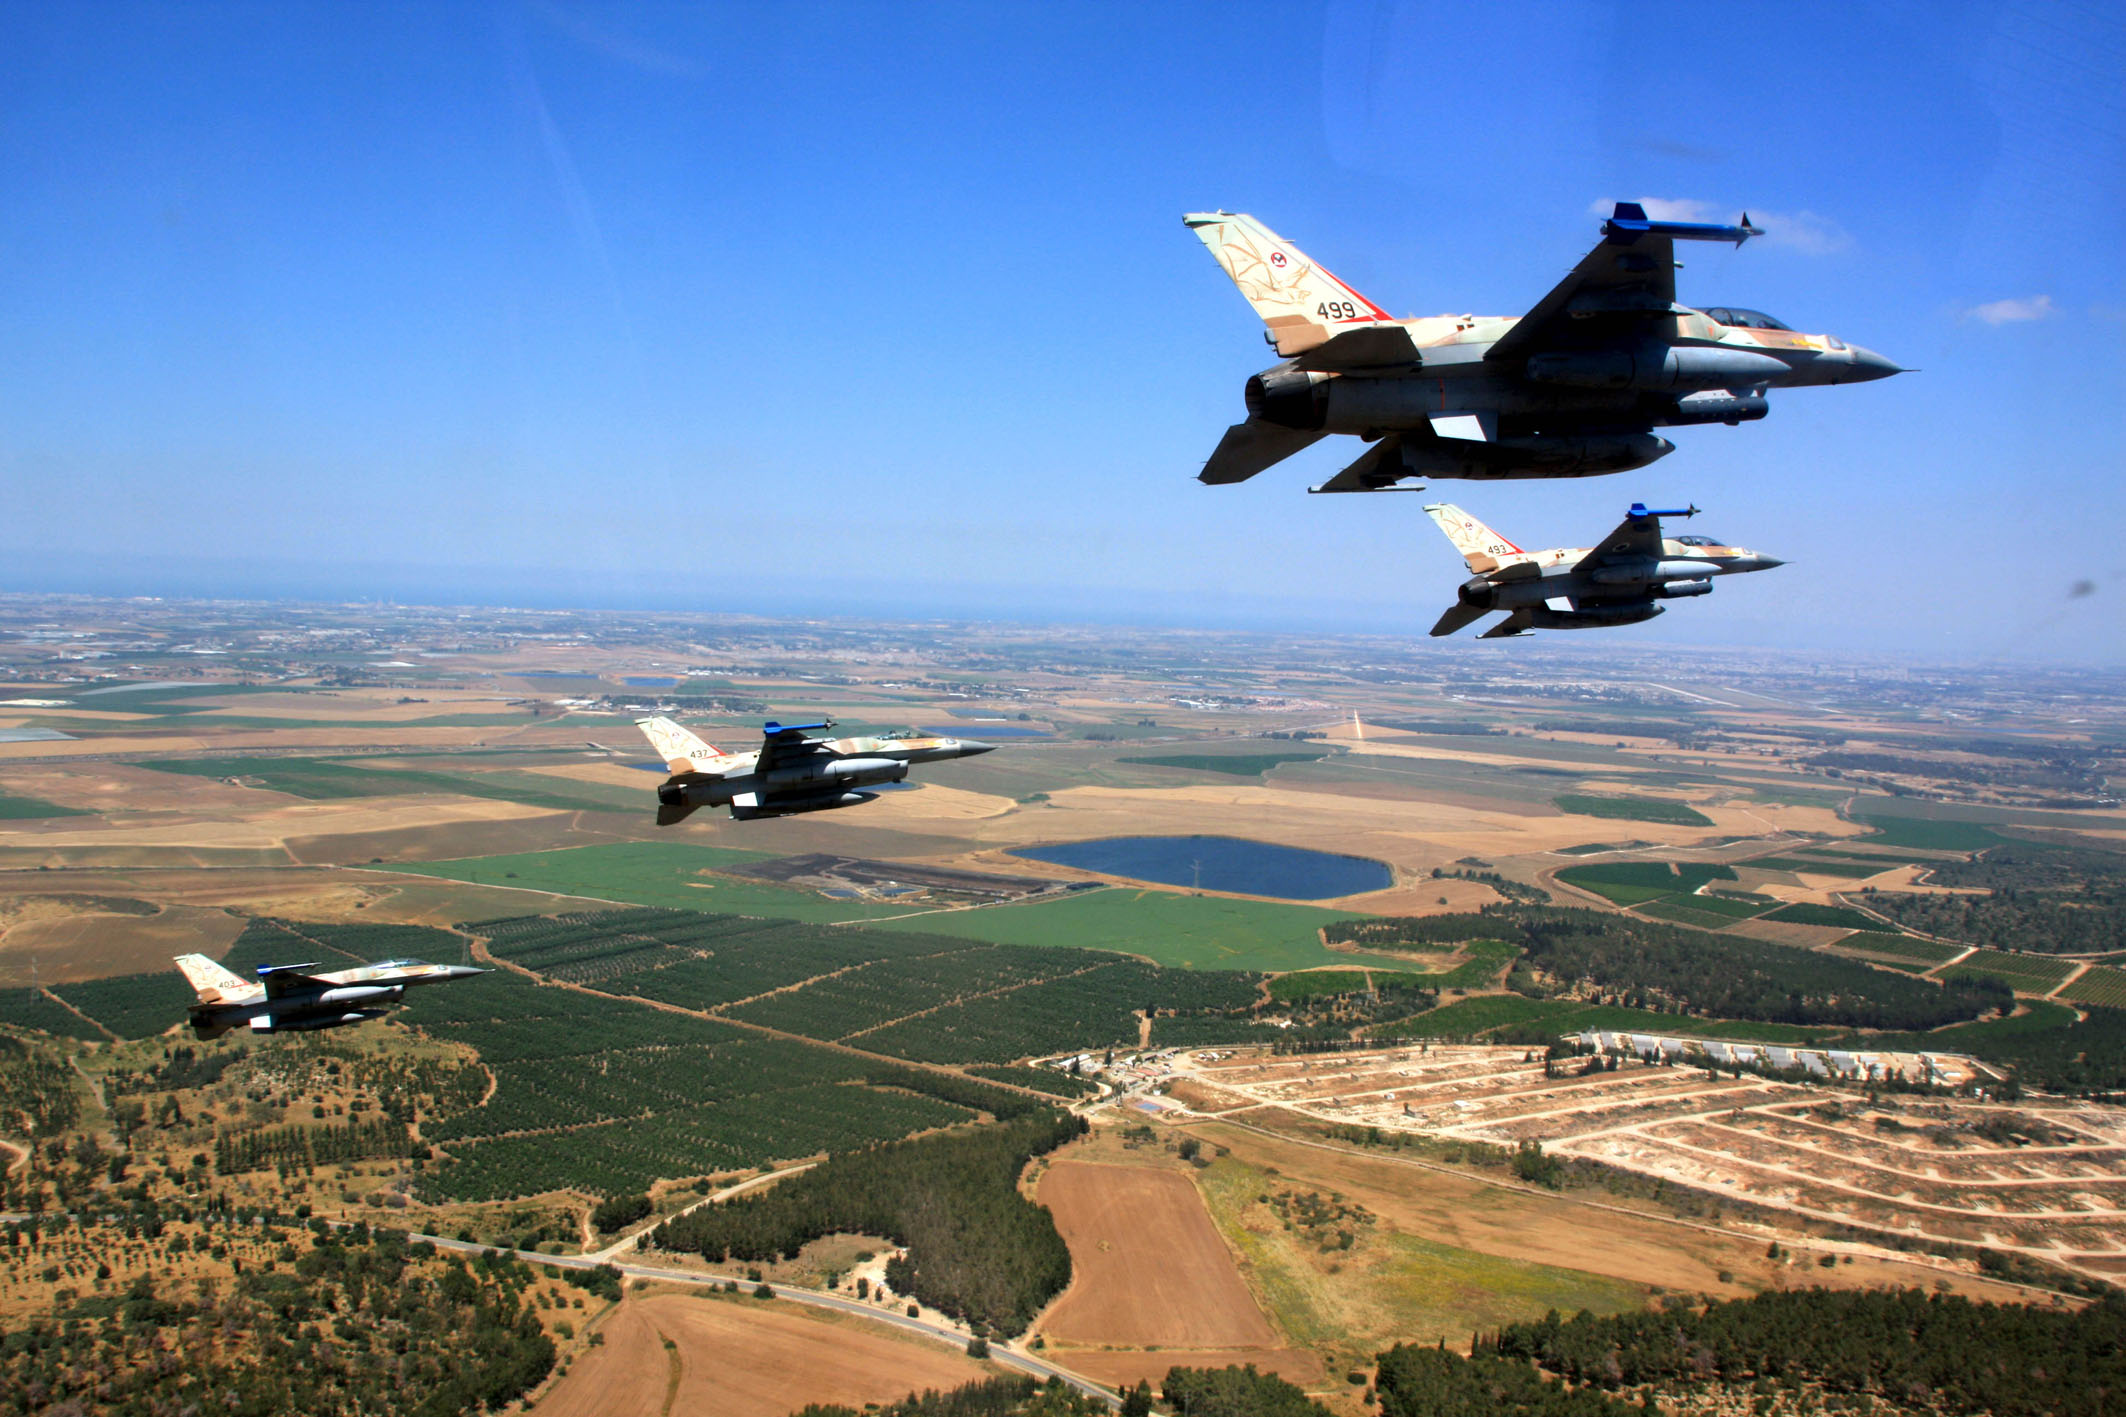 Israeli F-161's fly in formation. By the Israel Defense Forces.